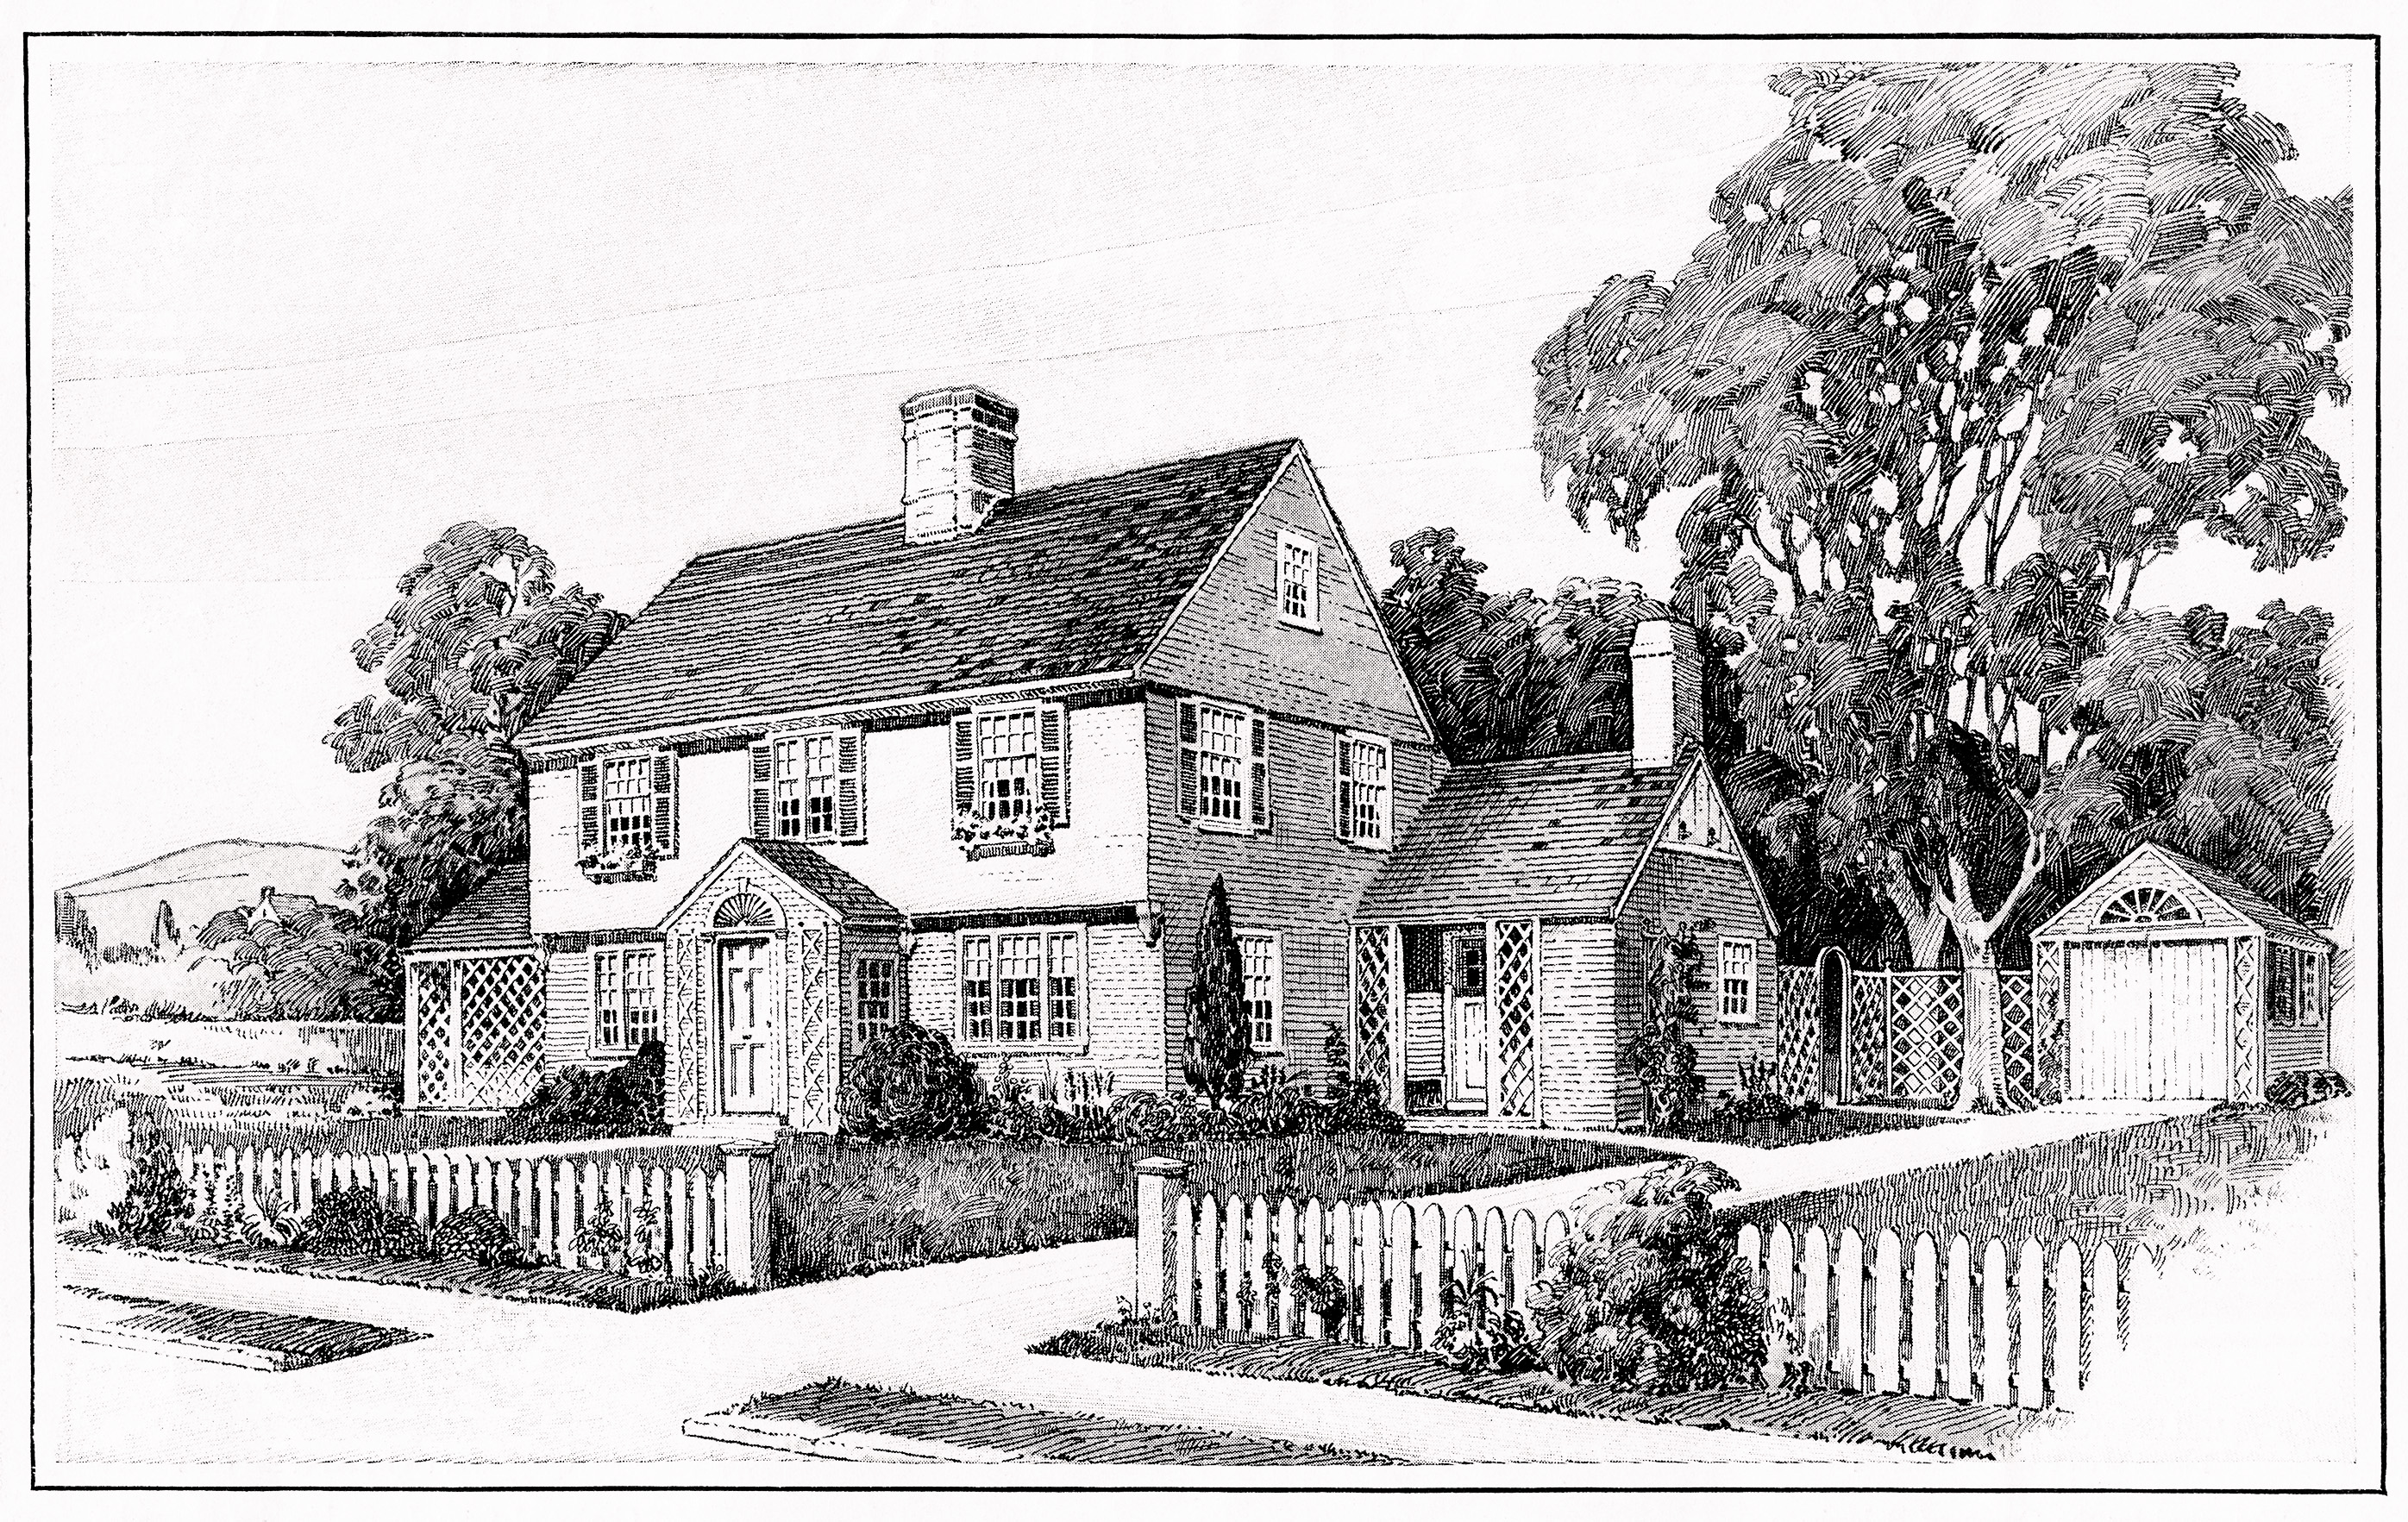 Free Vintage Images 1917 House Illustration And Floor Plans on old timey house plans